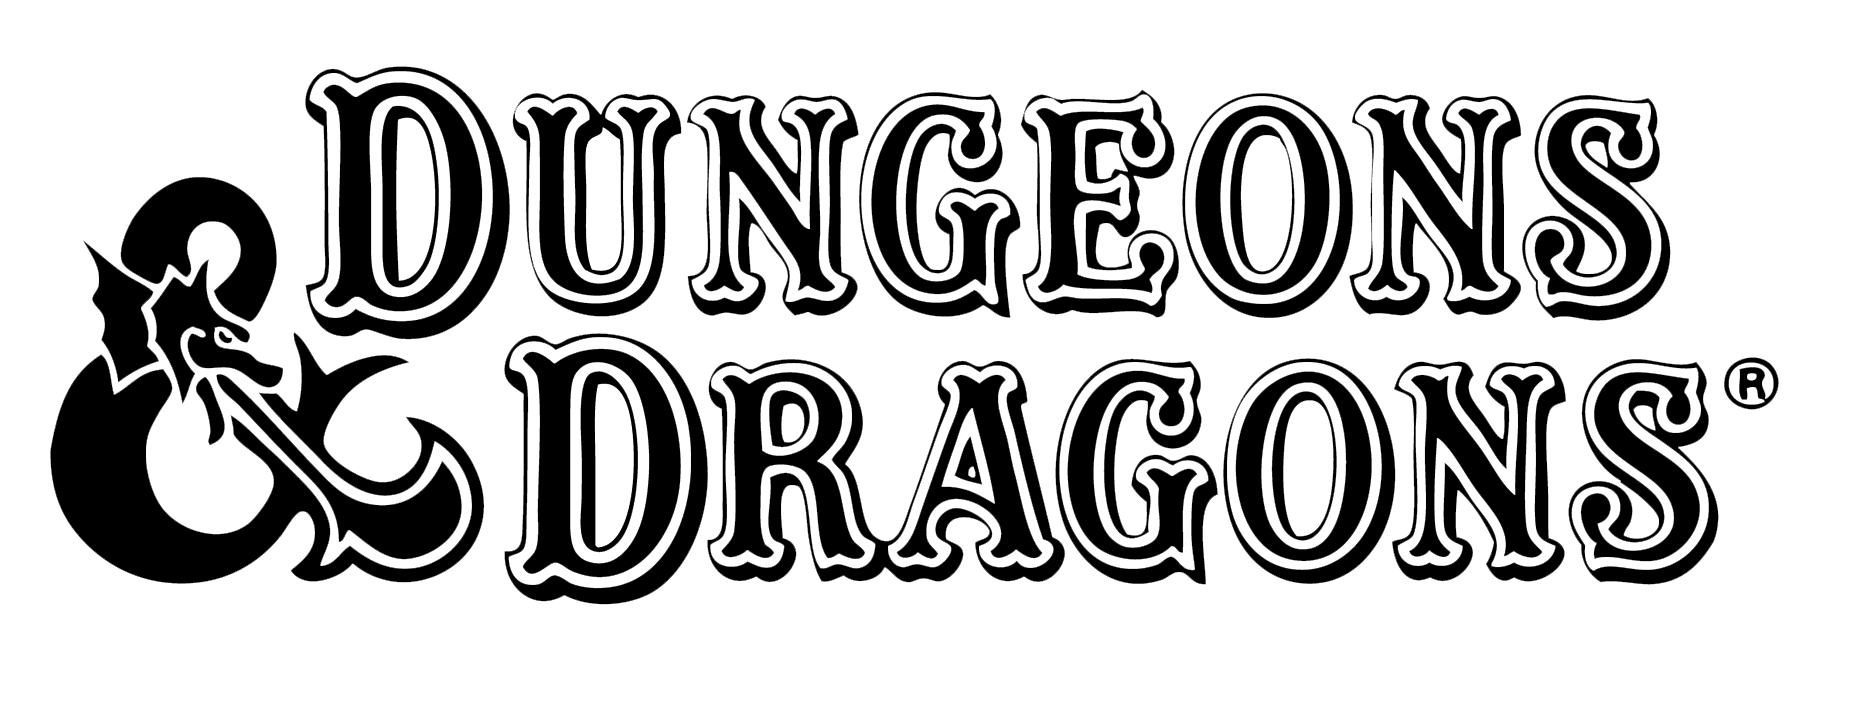 Image result for dungeons and dragons logo